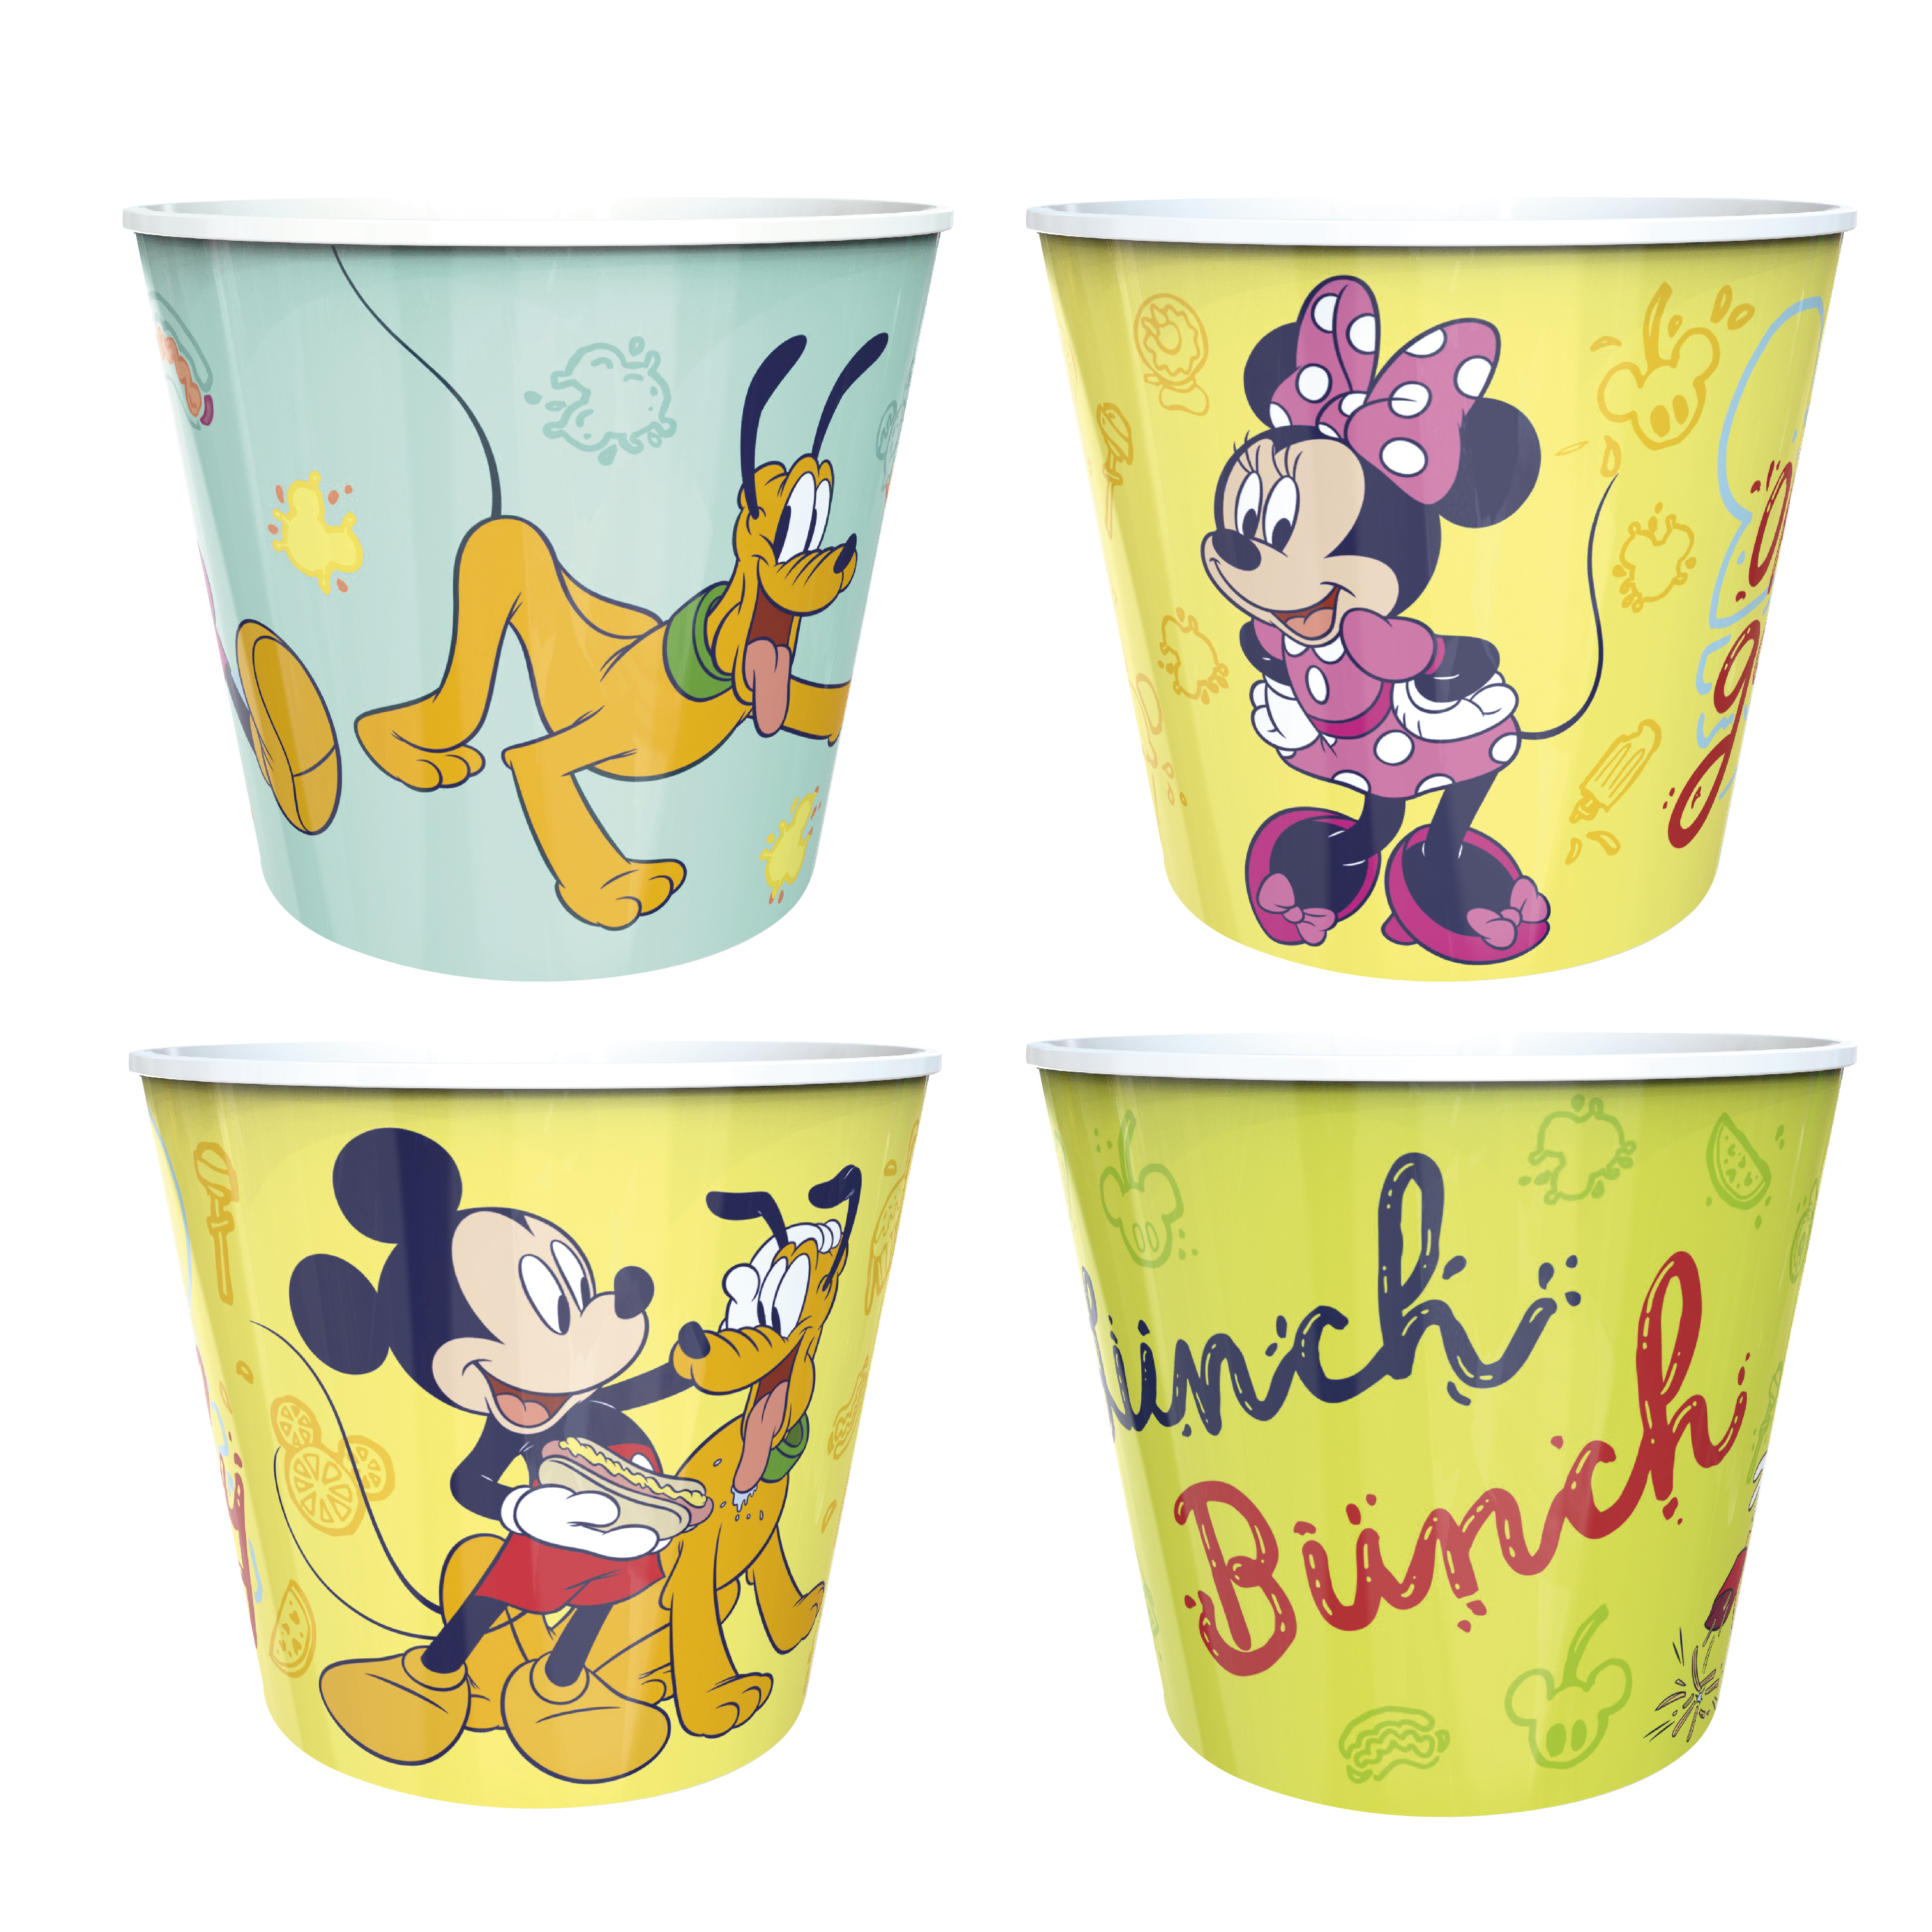 Disney Plastic Popcorn Container and Bowls, Mickey Mouse and Minnie Mouse, 5-piece set slideshow image 8